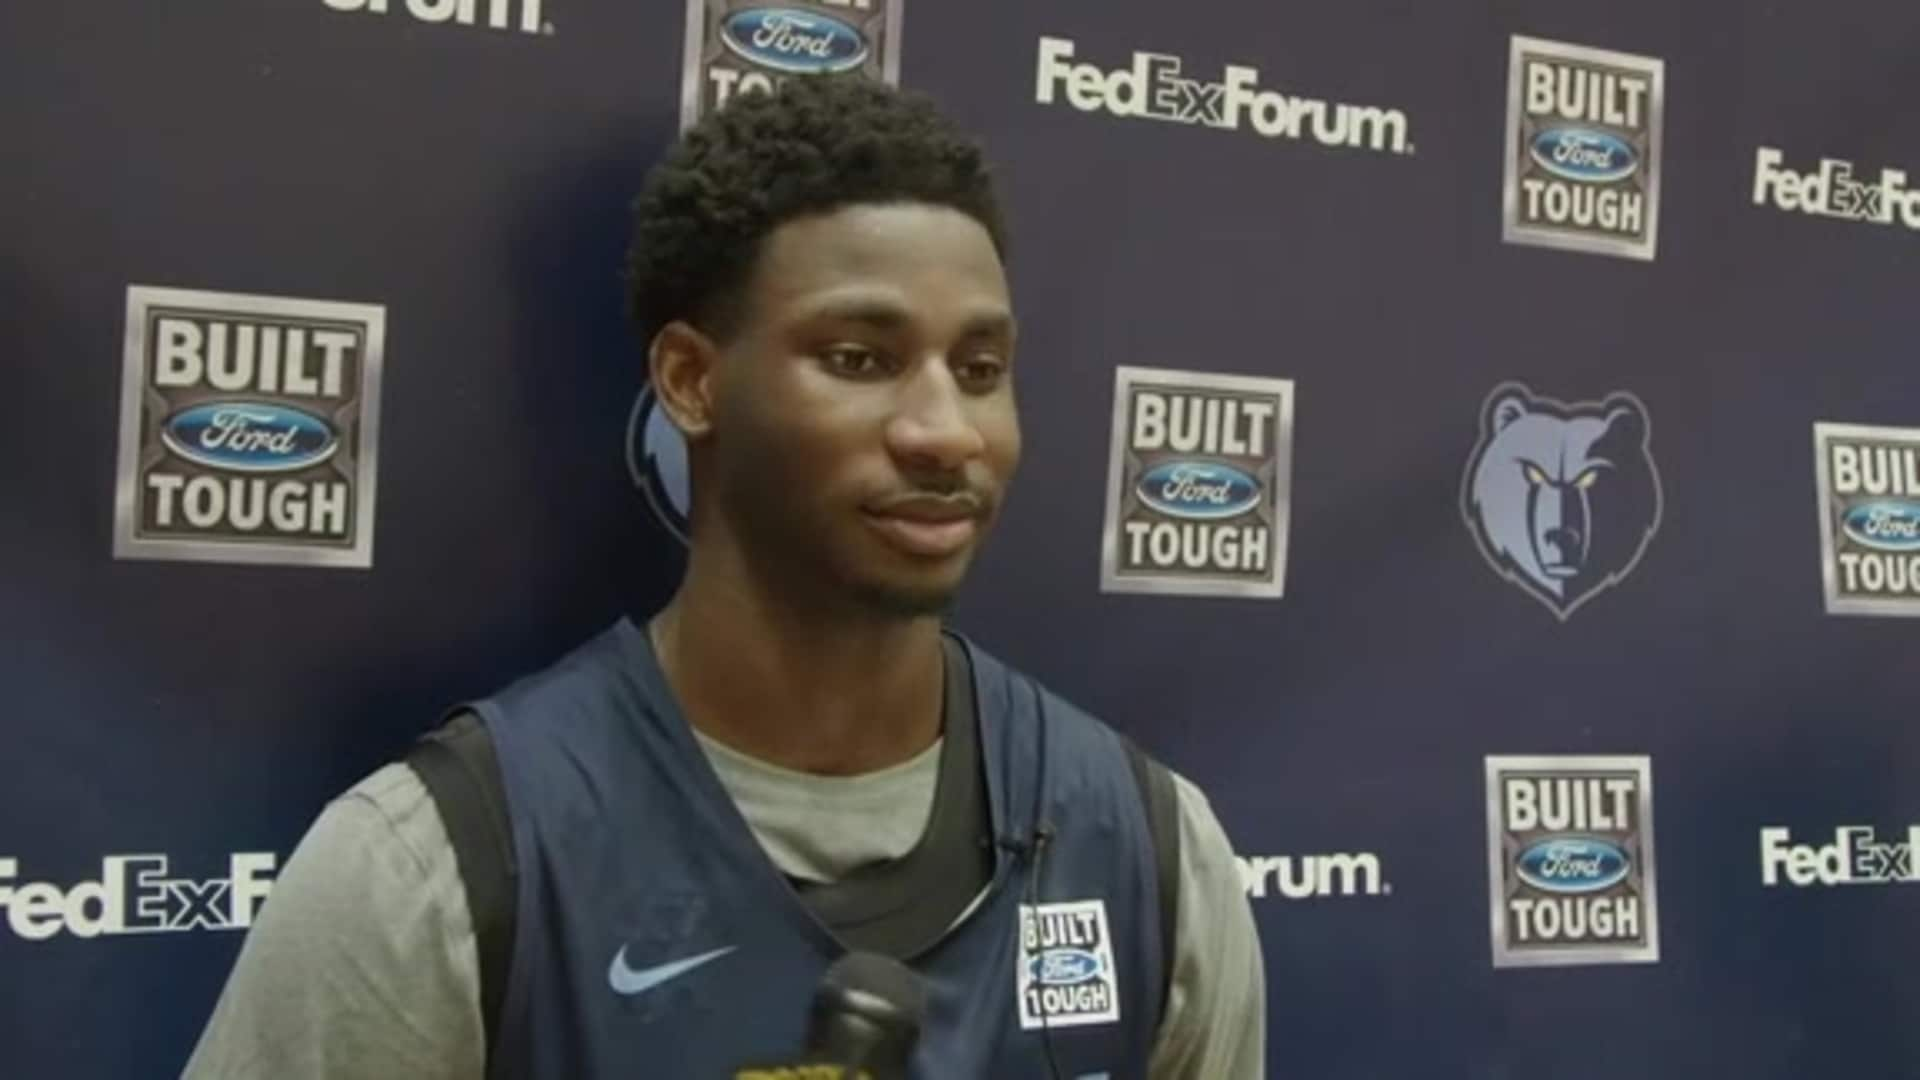 11.21.19 Jaren Jackson Jr. media availability